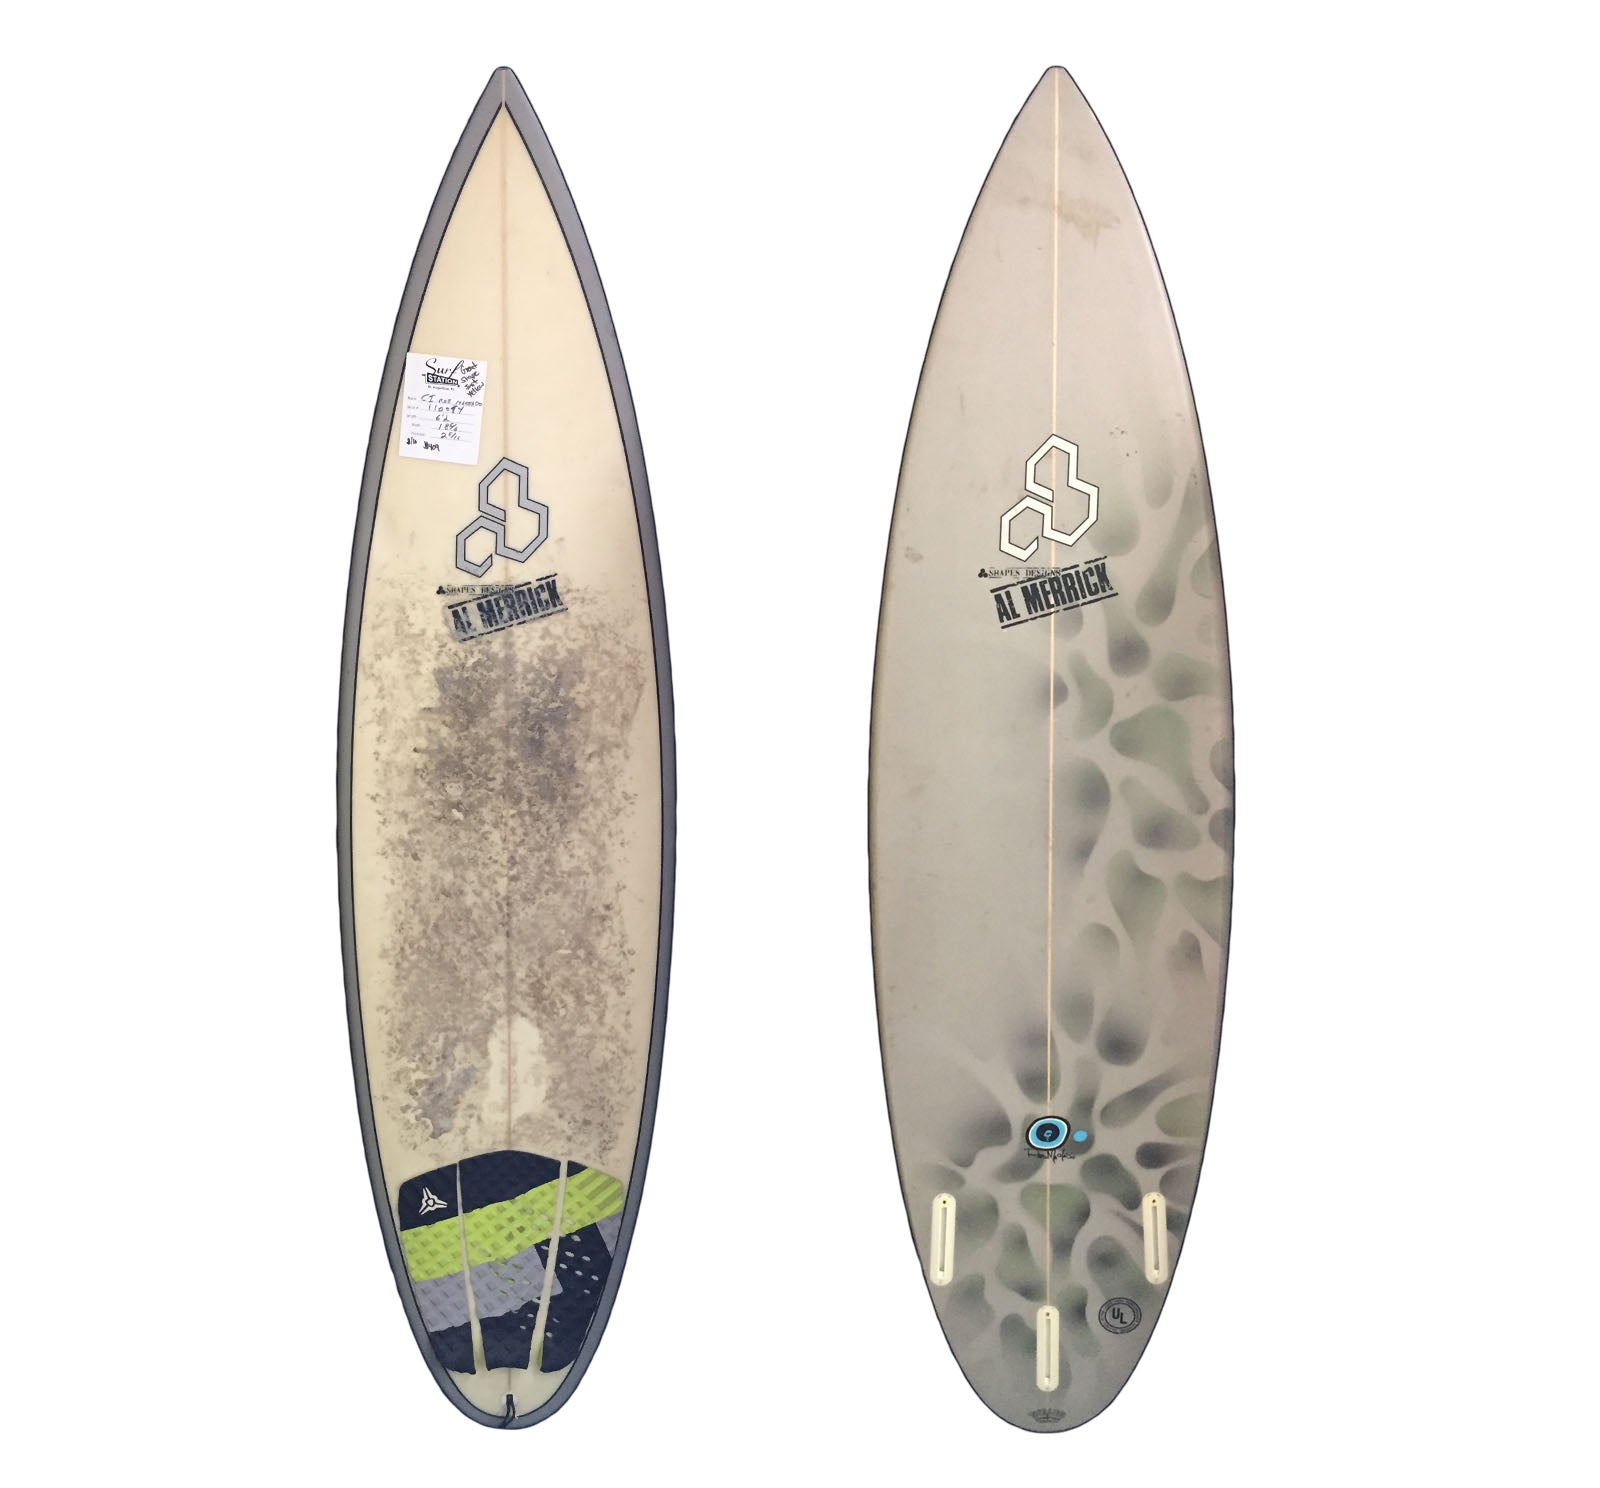 Channel Islands Machado 6'2 Used Surfboard